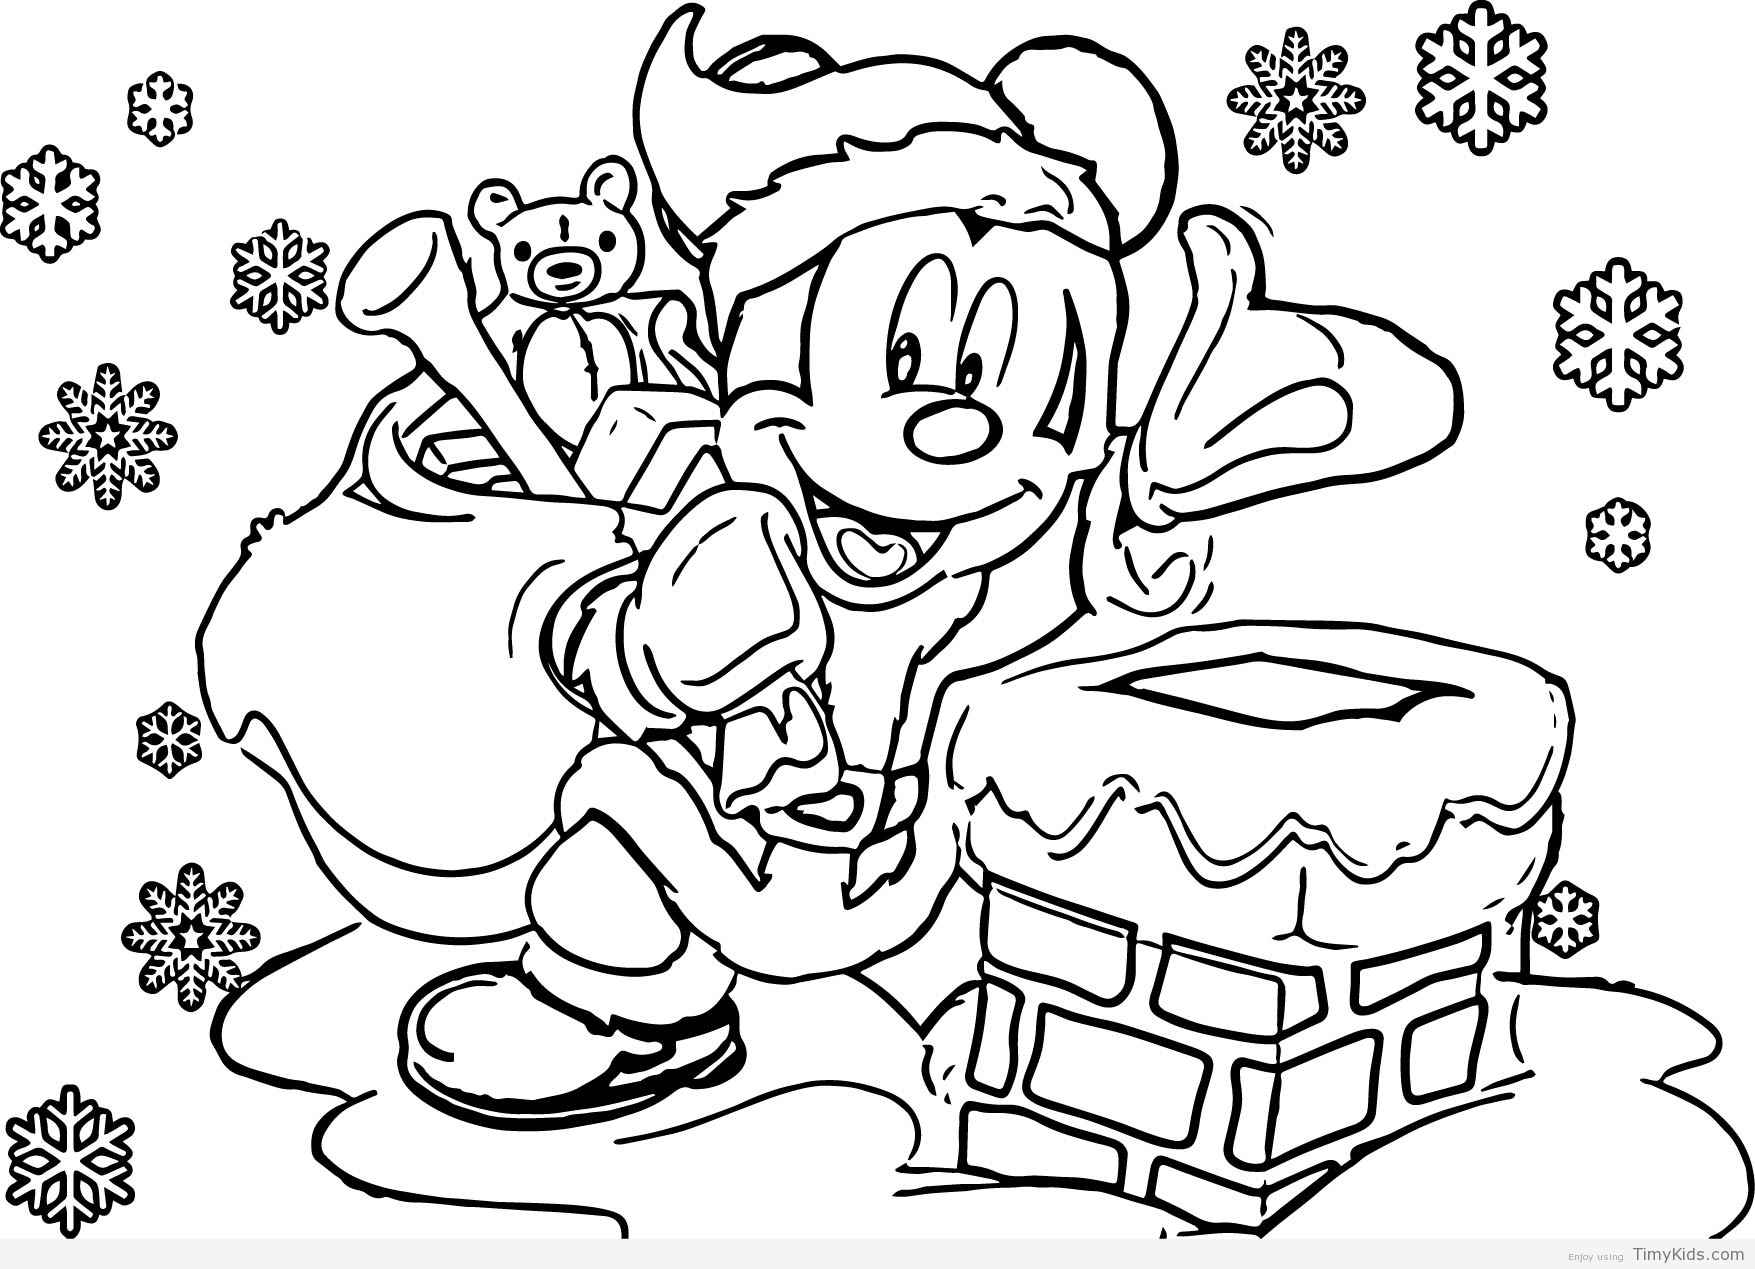 Christmas Coloring Pages Printable With Minion To Print Free Books